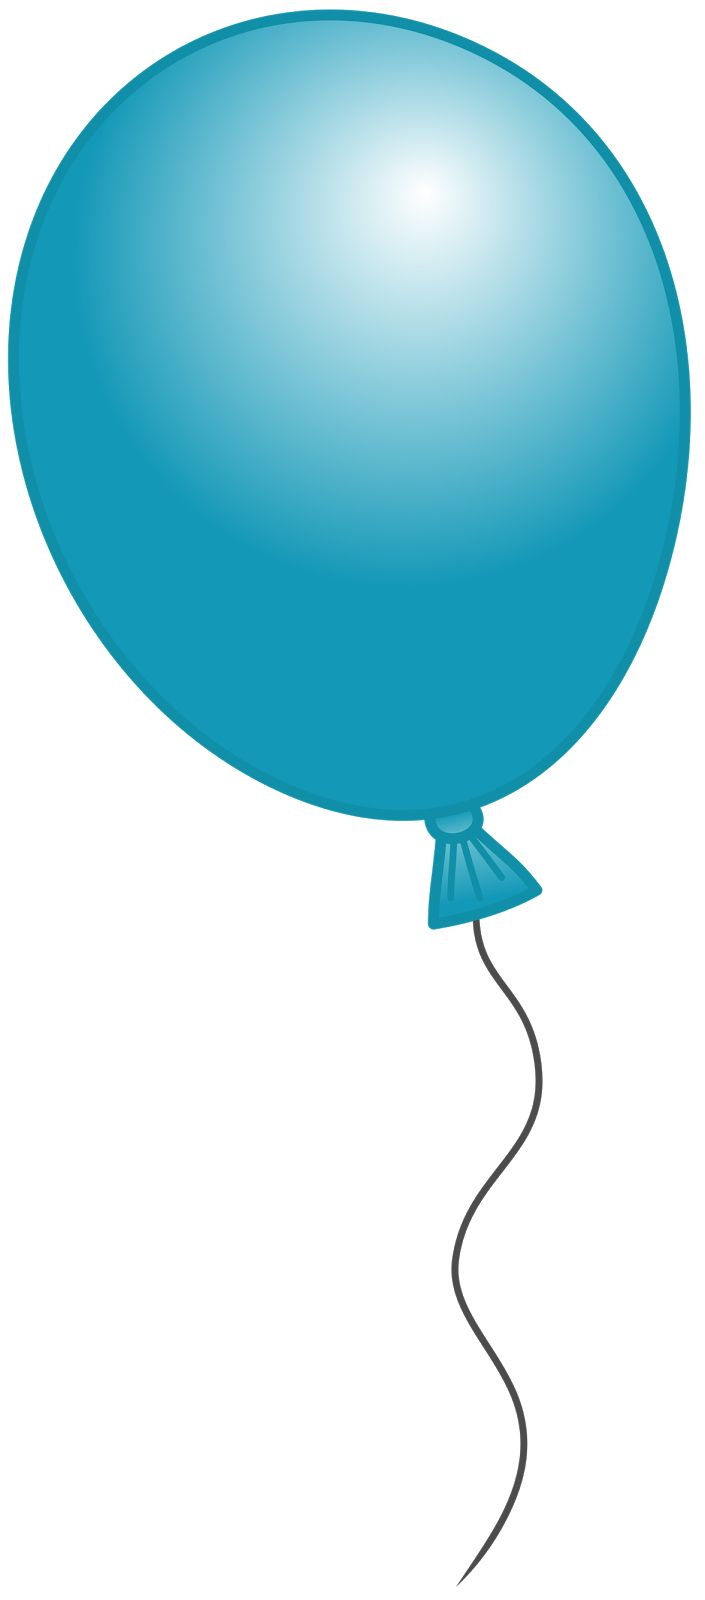 Green and blue balloons - Balloons